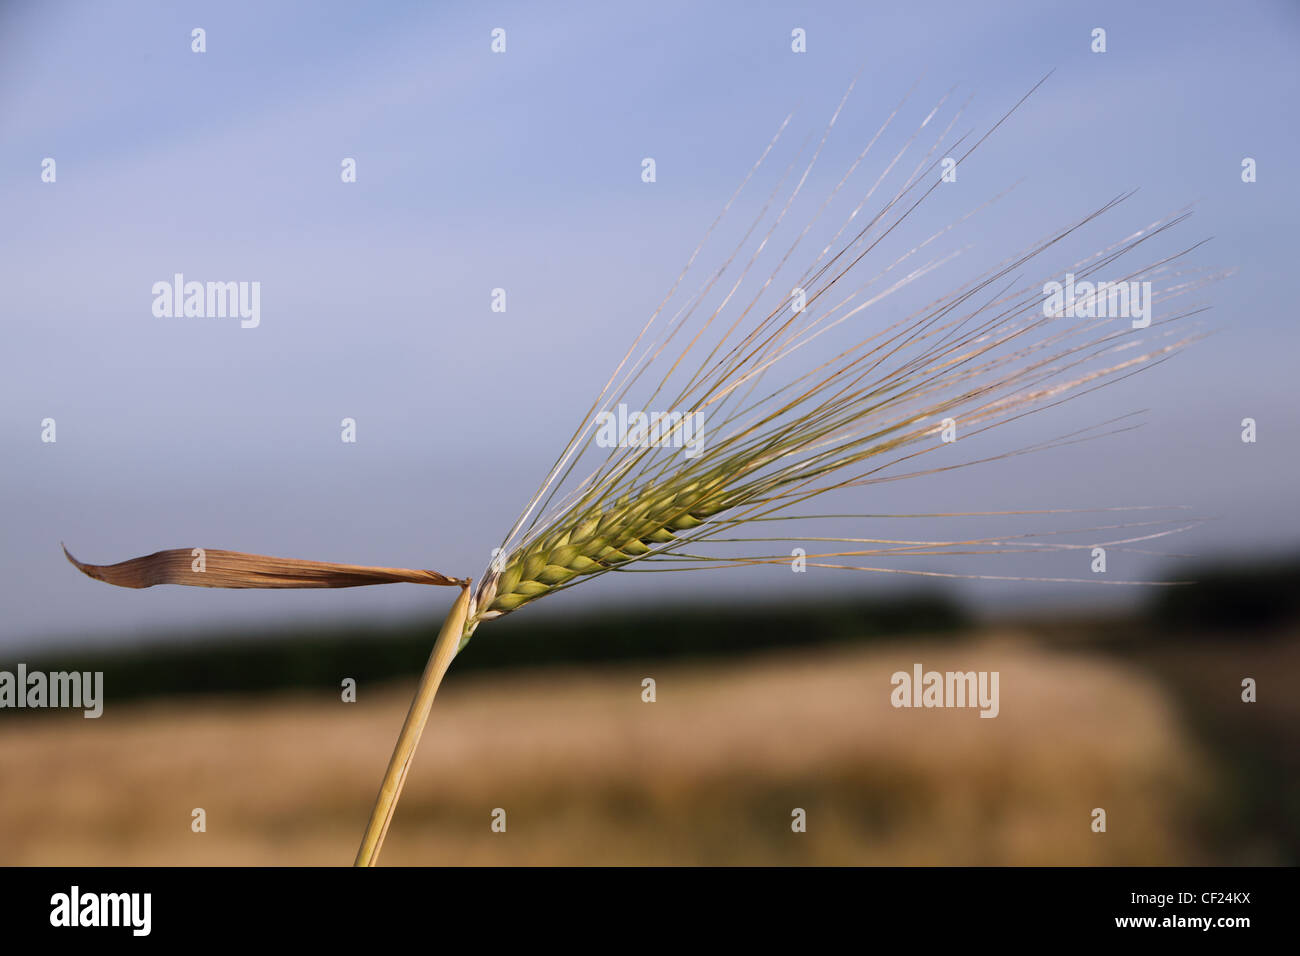 A Single ear of barley (corn) isolated from a field, summer just before harvest. Low light near sunset. - Stock Image